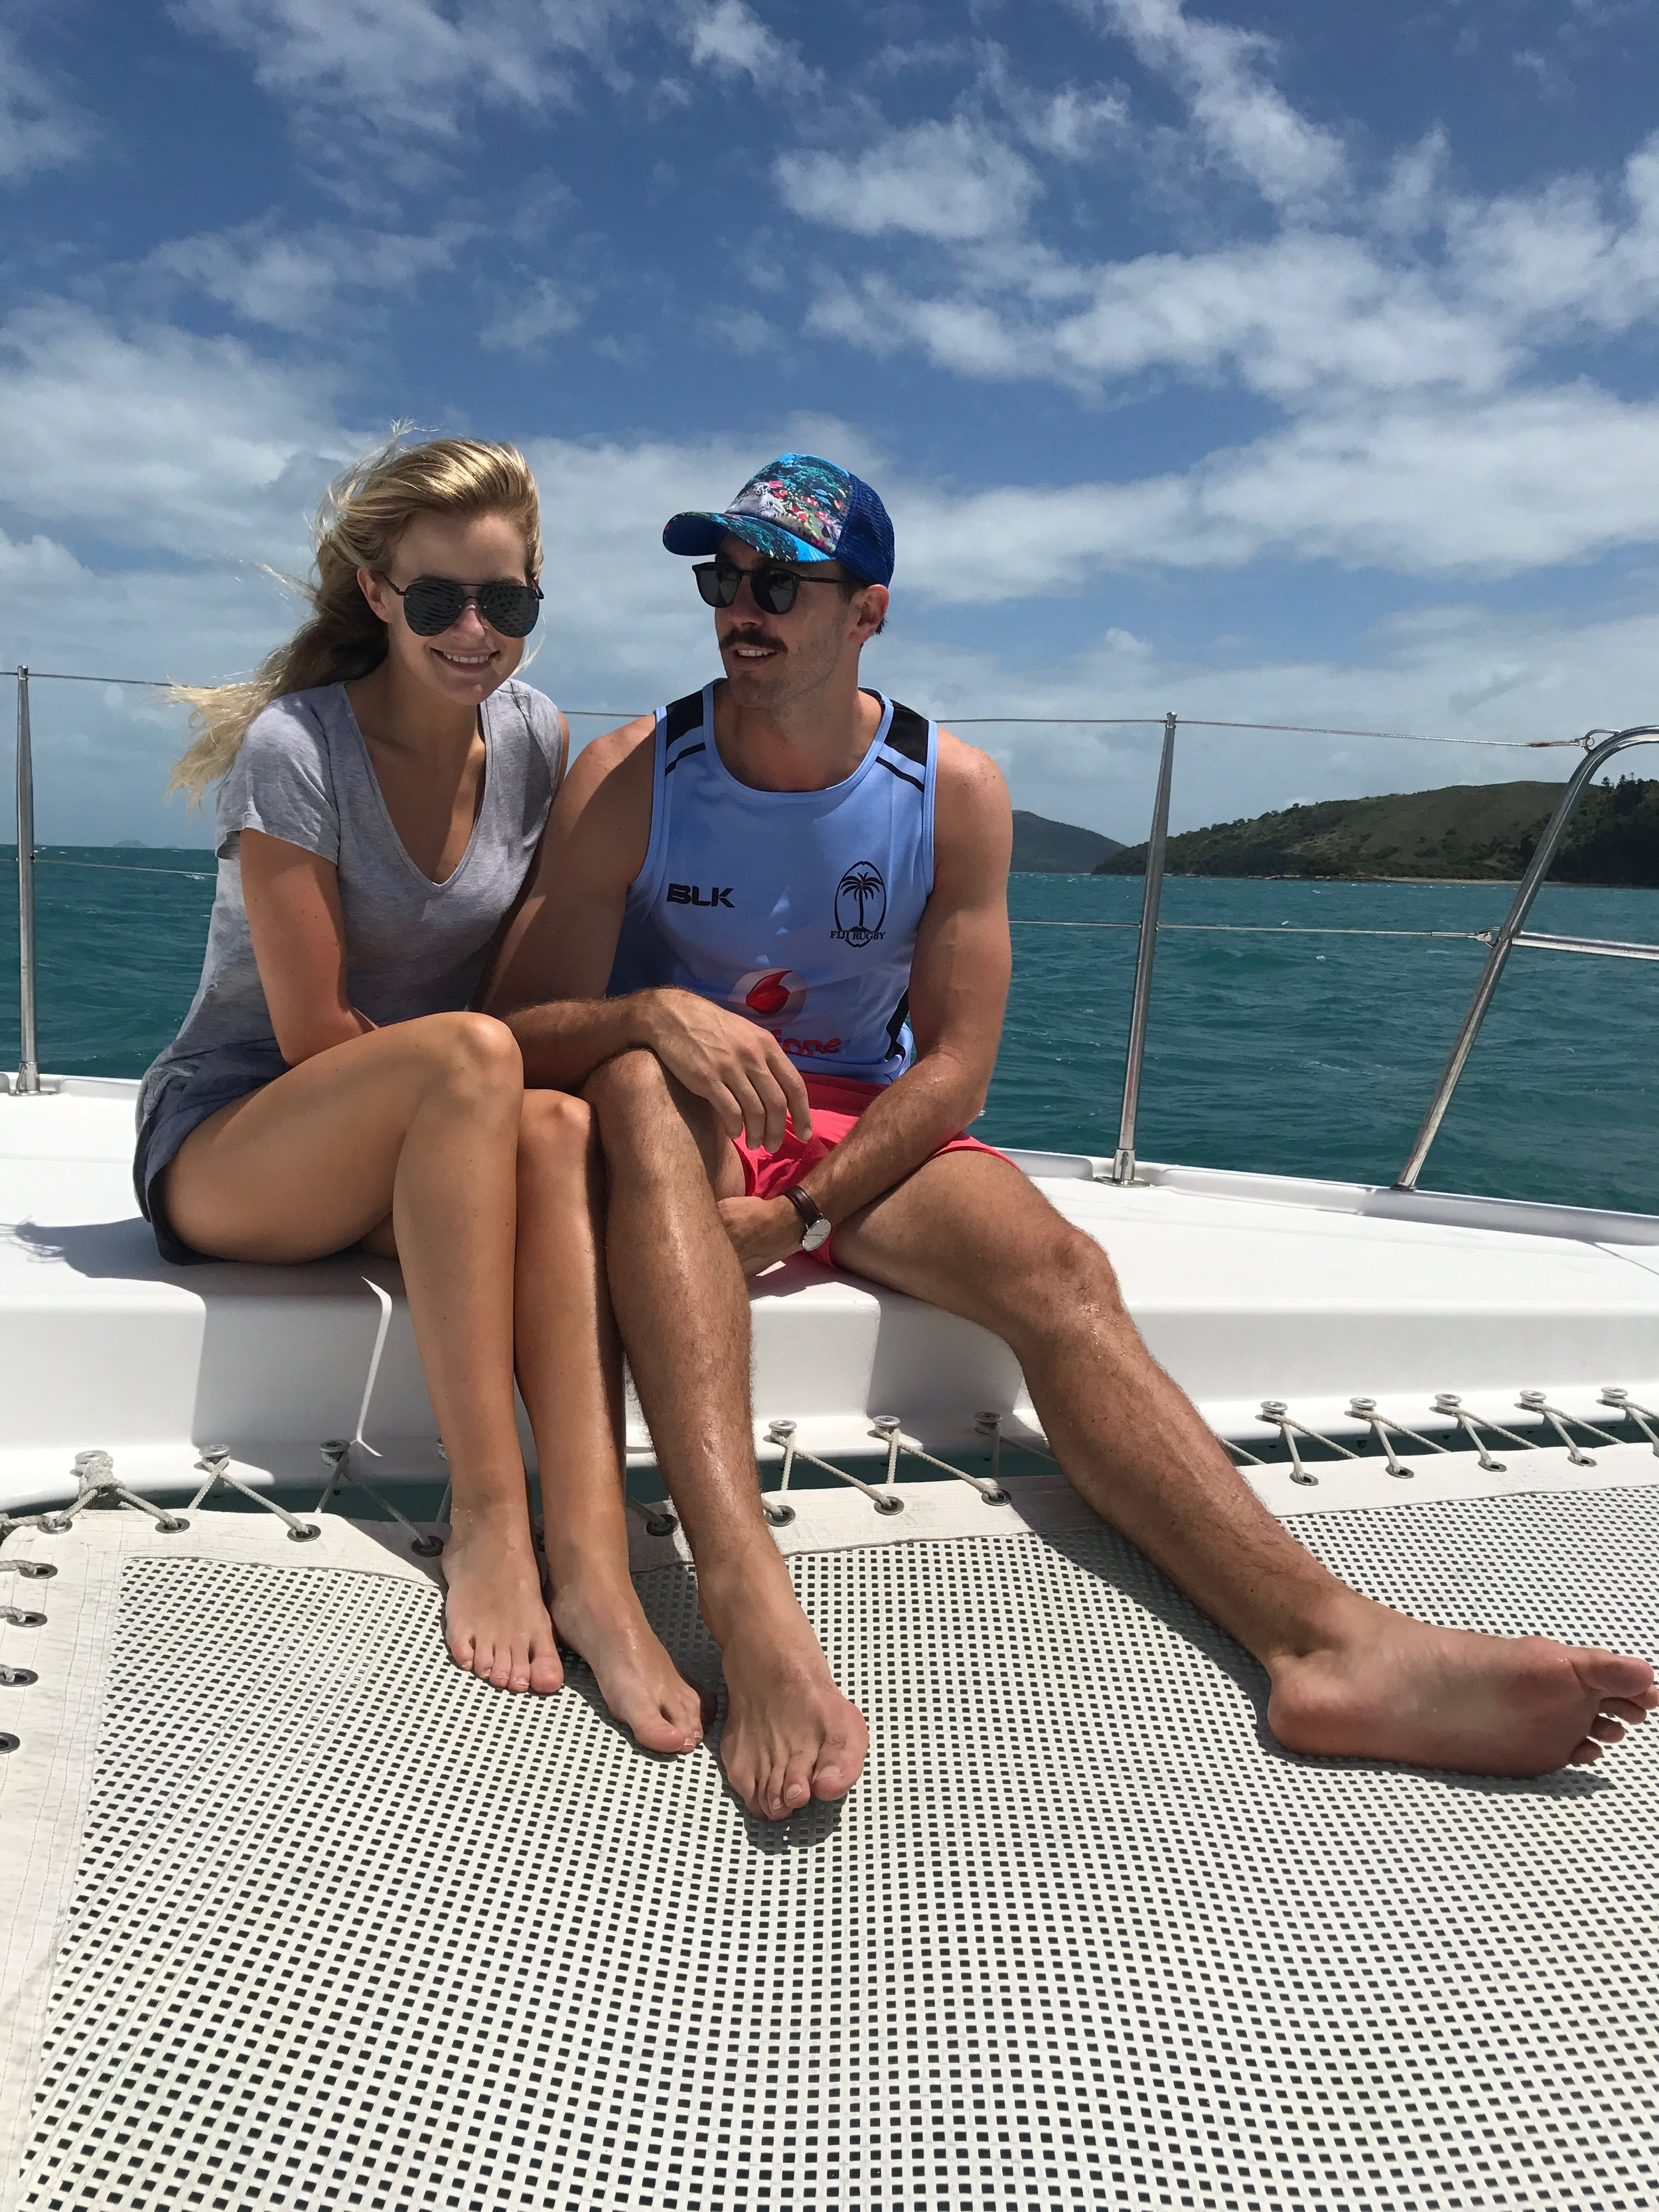 Boating on Hamilton Island